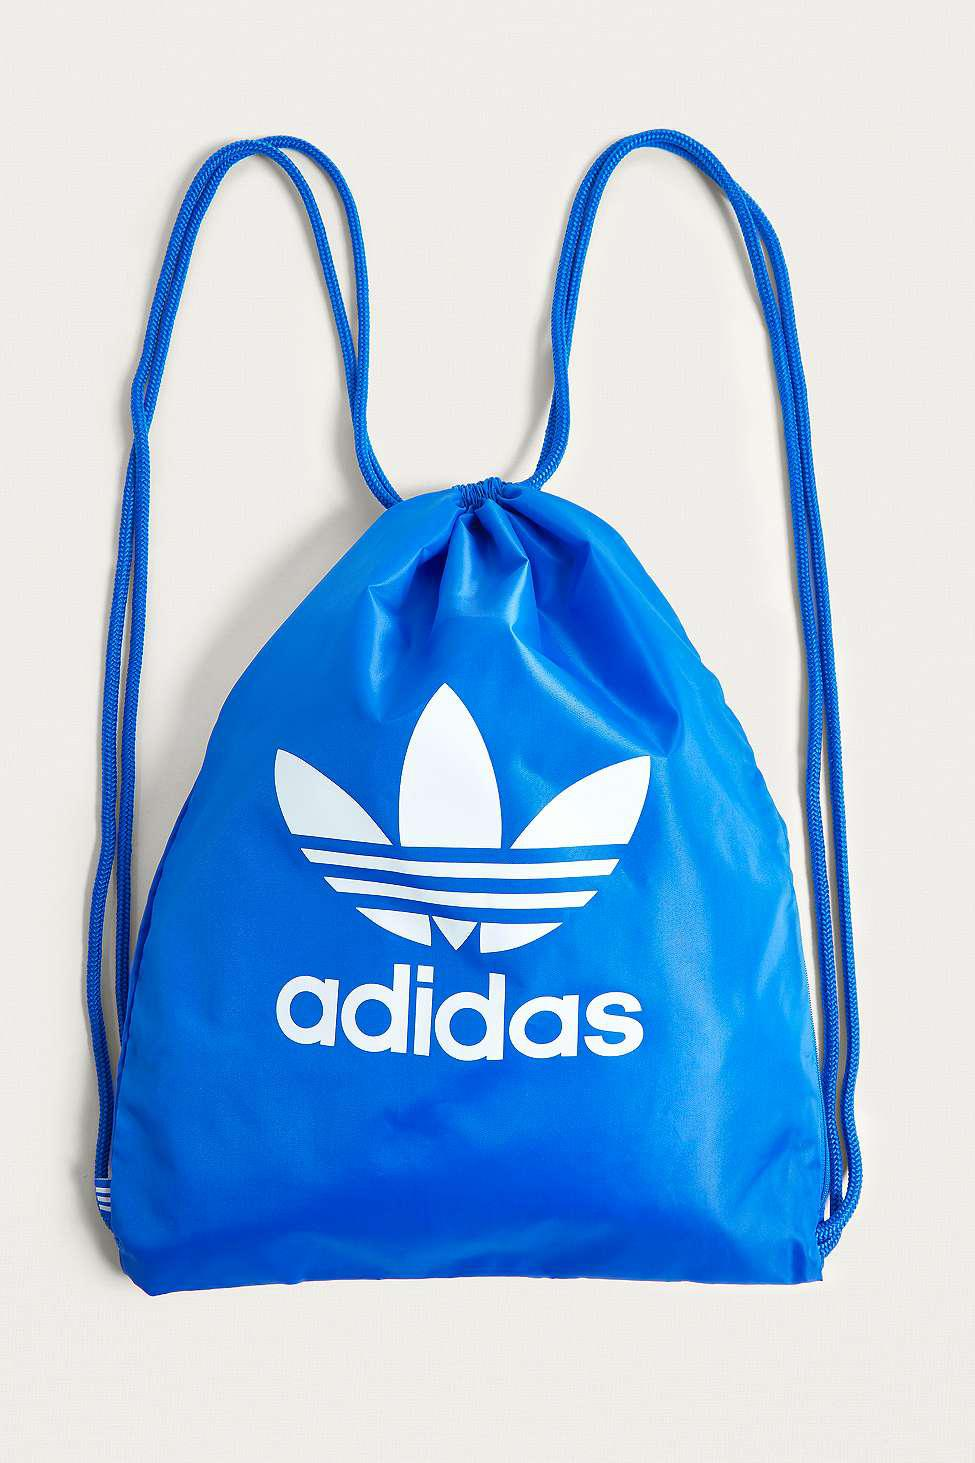 0674d7e4a adidas Originals Blue Trefoil Gym Sack - Womens All in Blue - Lyst